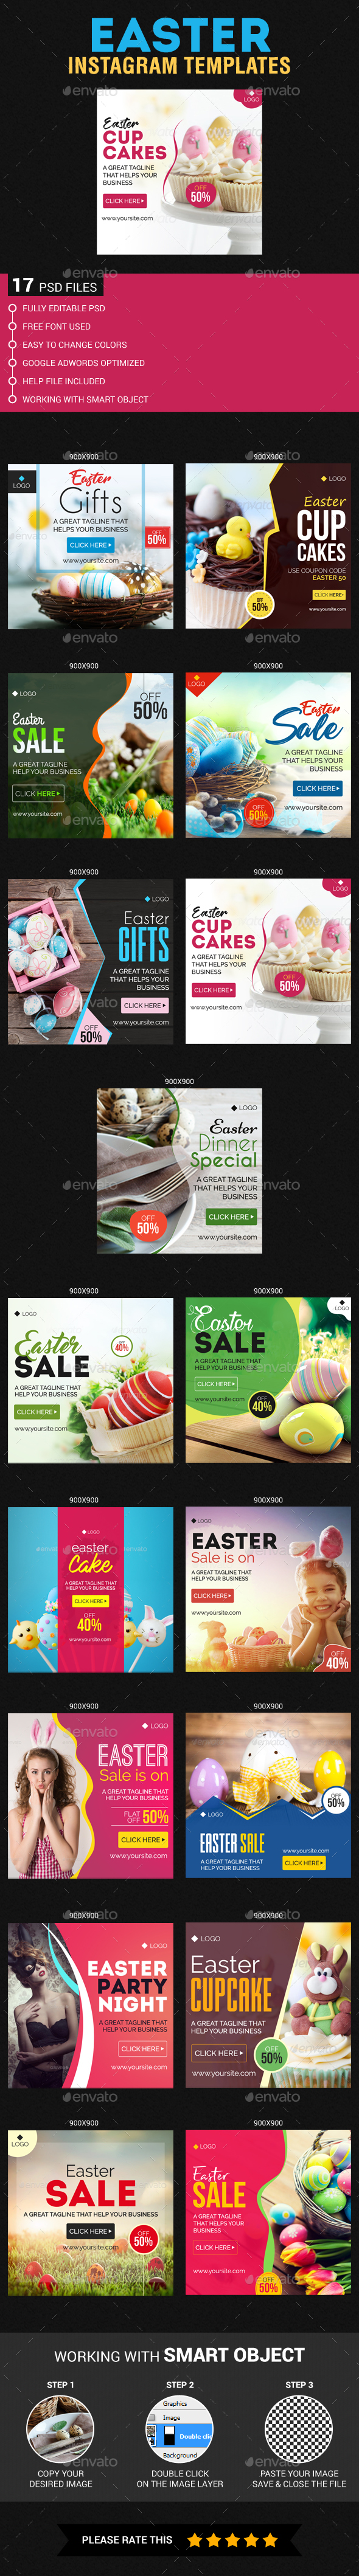 Easter Instagram Templates - Banners & Ads Web Elements